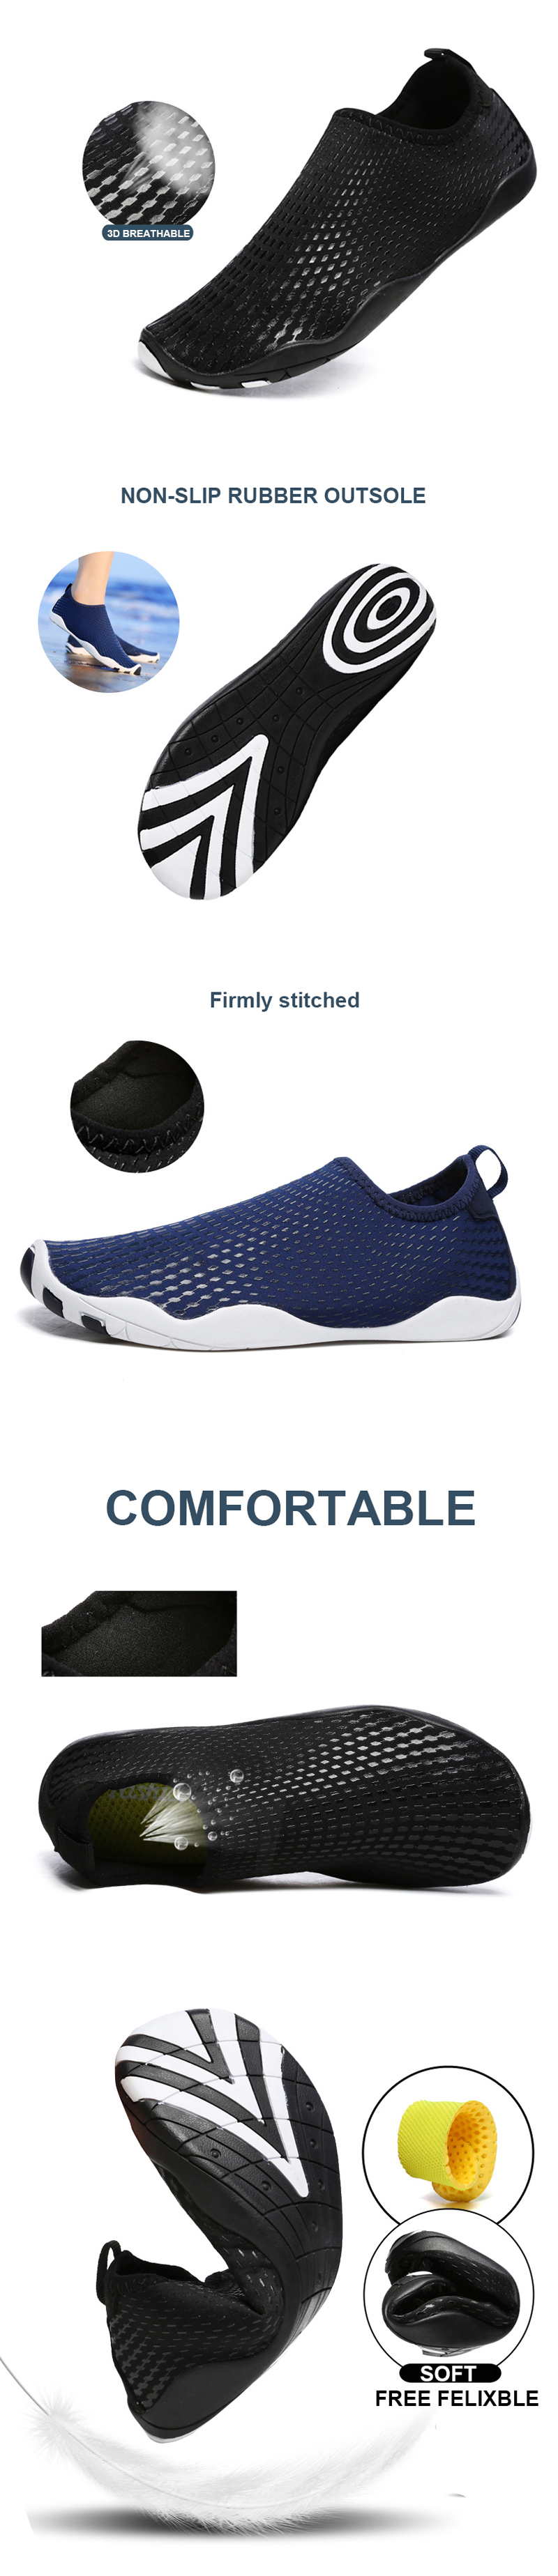 Y022 Men Summer Outdoor Anti-skid Slip-on Water Beach Trekking Walking Swimming Shoes Sneakers